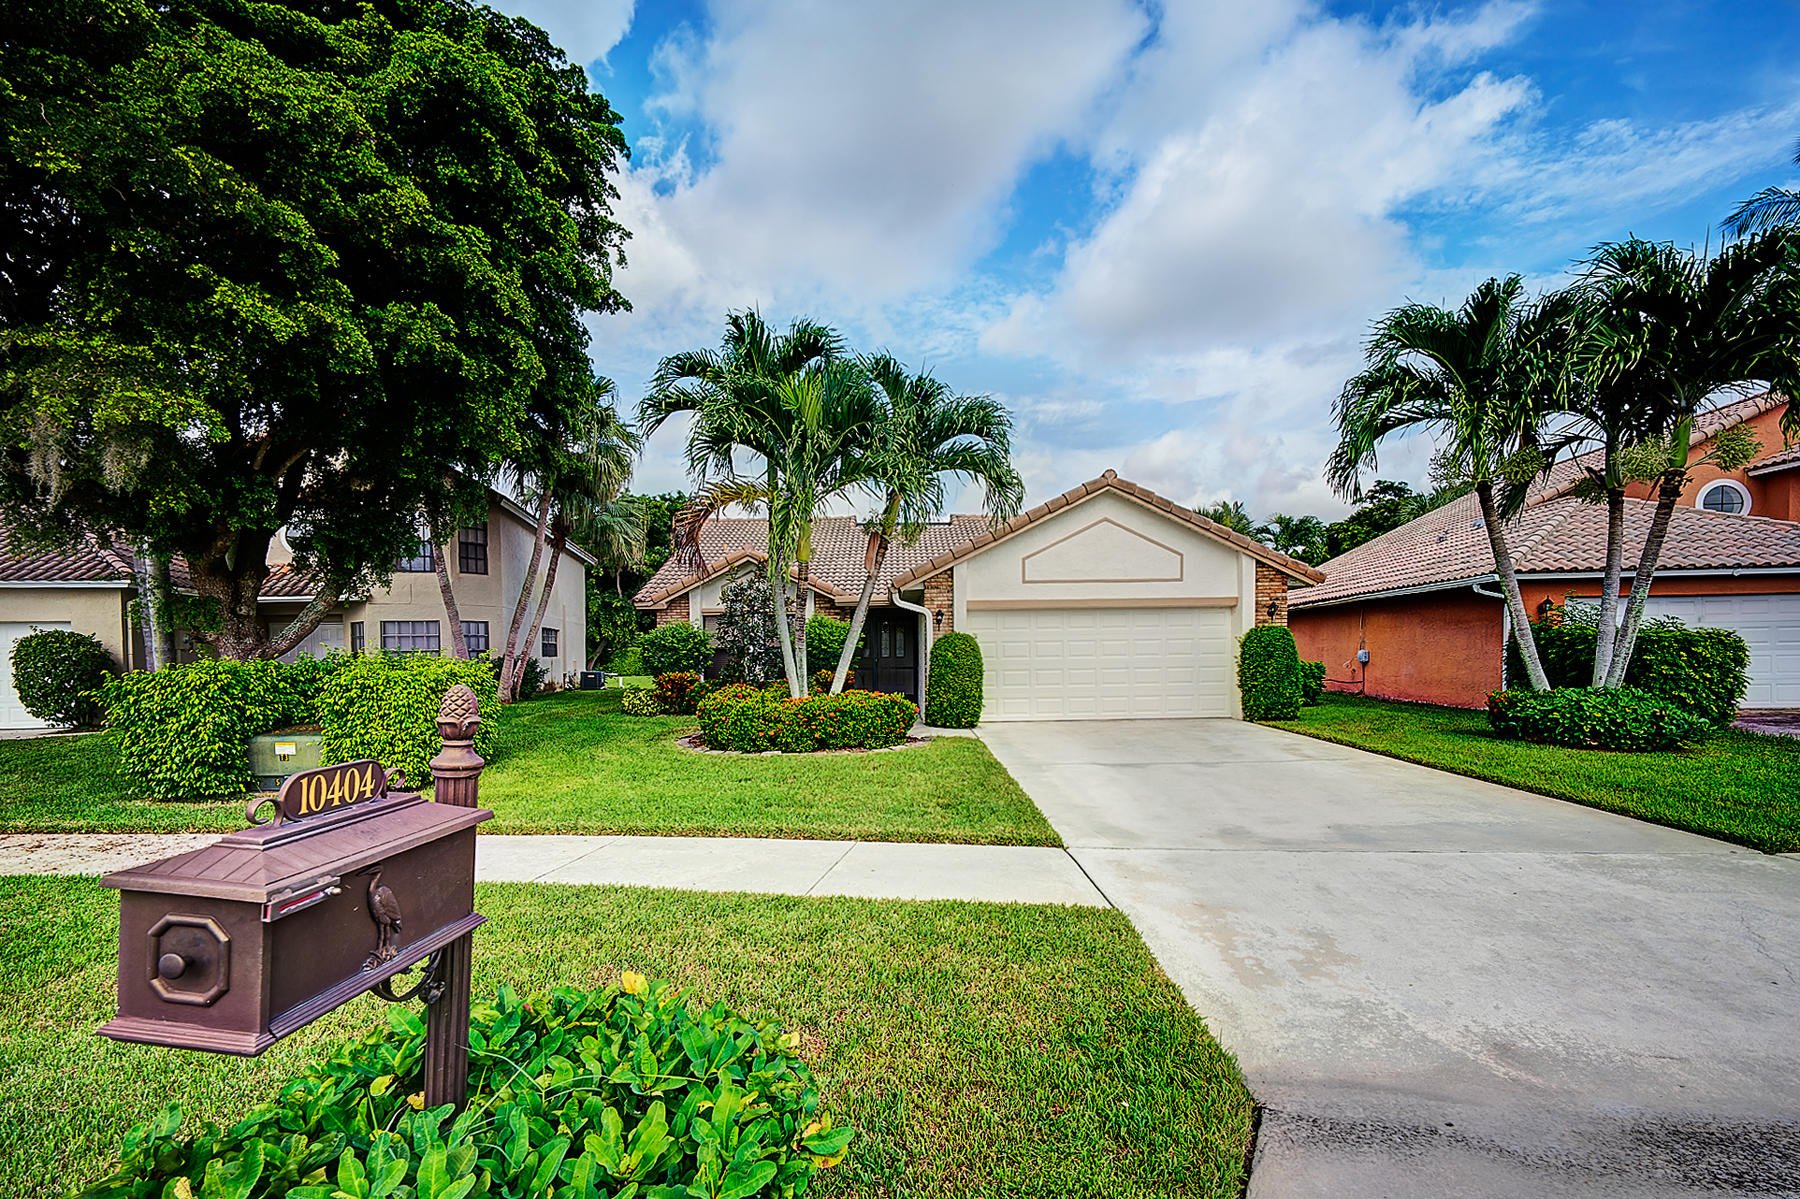 Home for sale in Amber Bay Boca Raton Florida